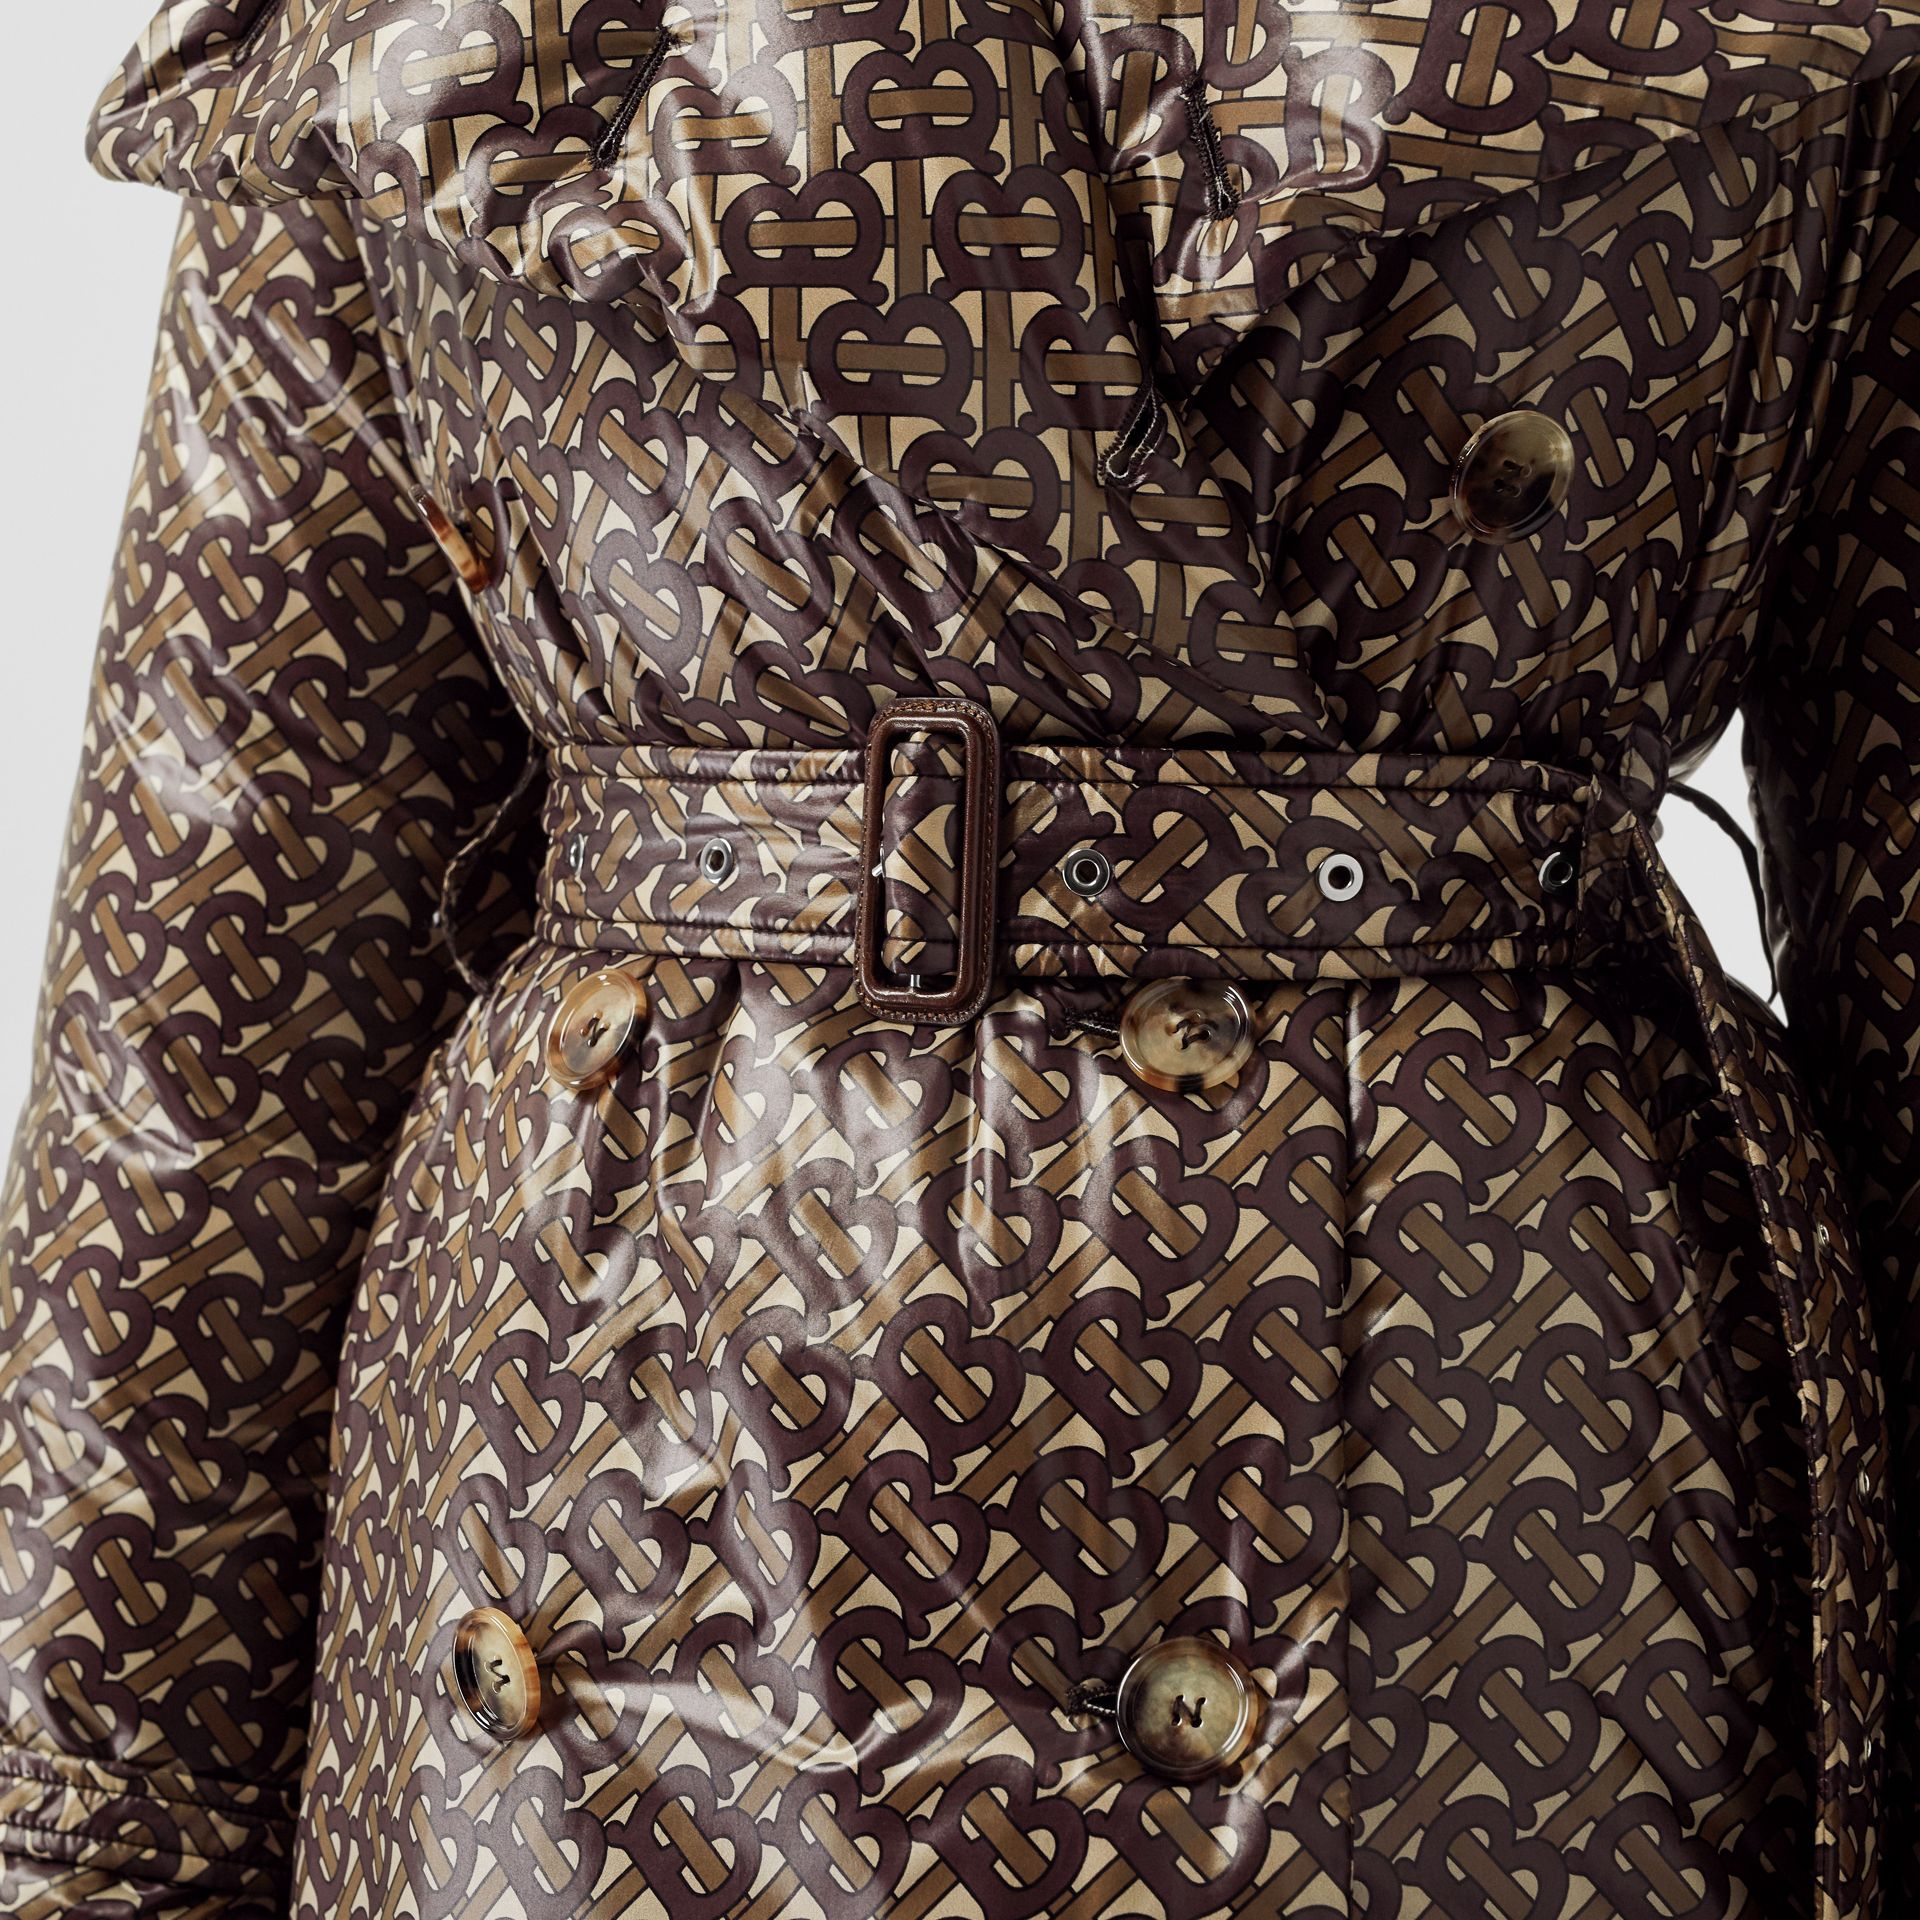 Monogram Print Nylon Down-filled Trench Coat in Bridle Brown - Women | Burberry - gallery image 5